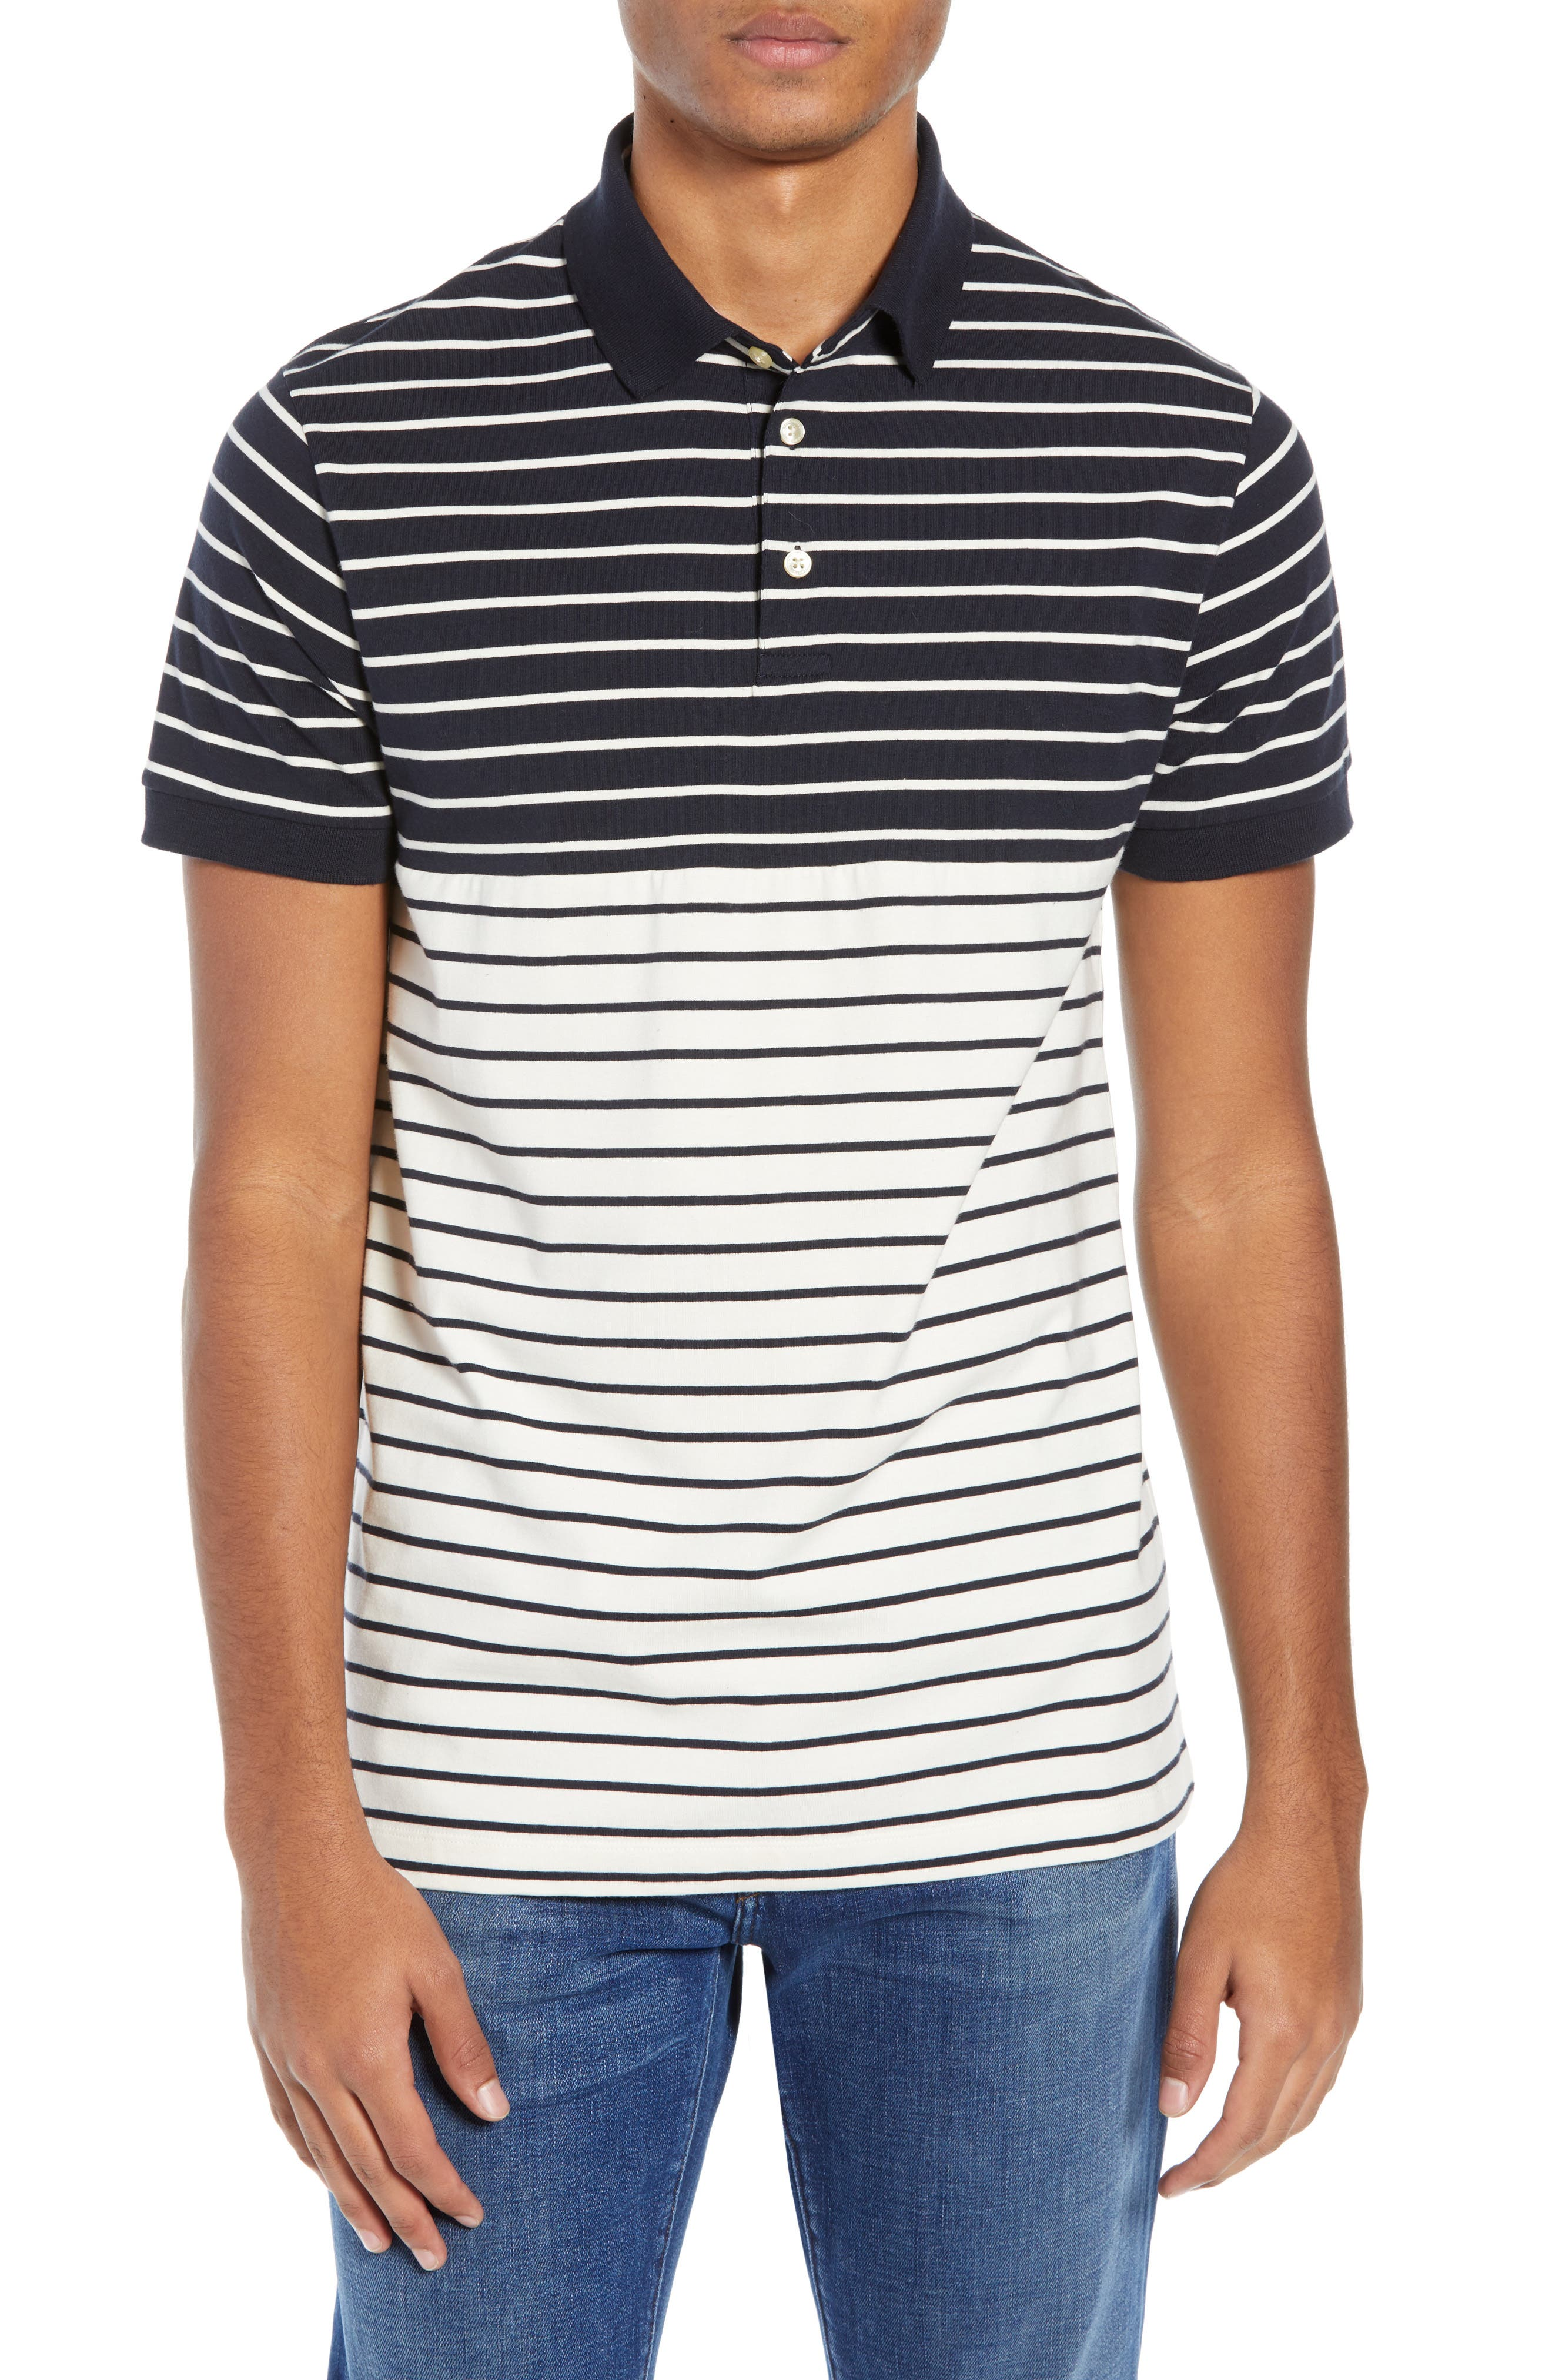 FRENCH CONNECTION, Tim Regular Fit Stripe Polo, Main thumbnail 1, color, UTILITY BLUE CREAM